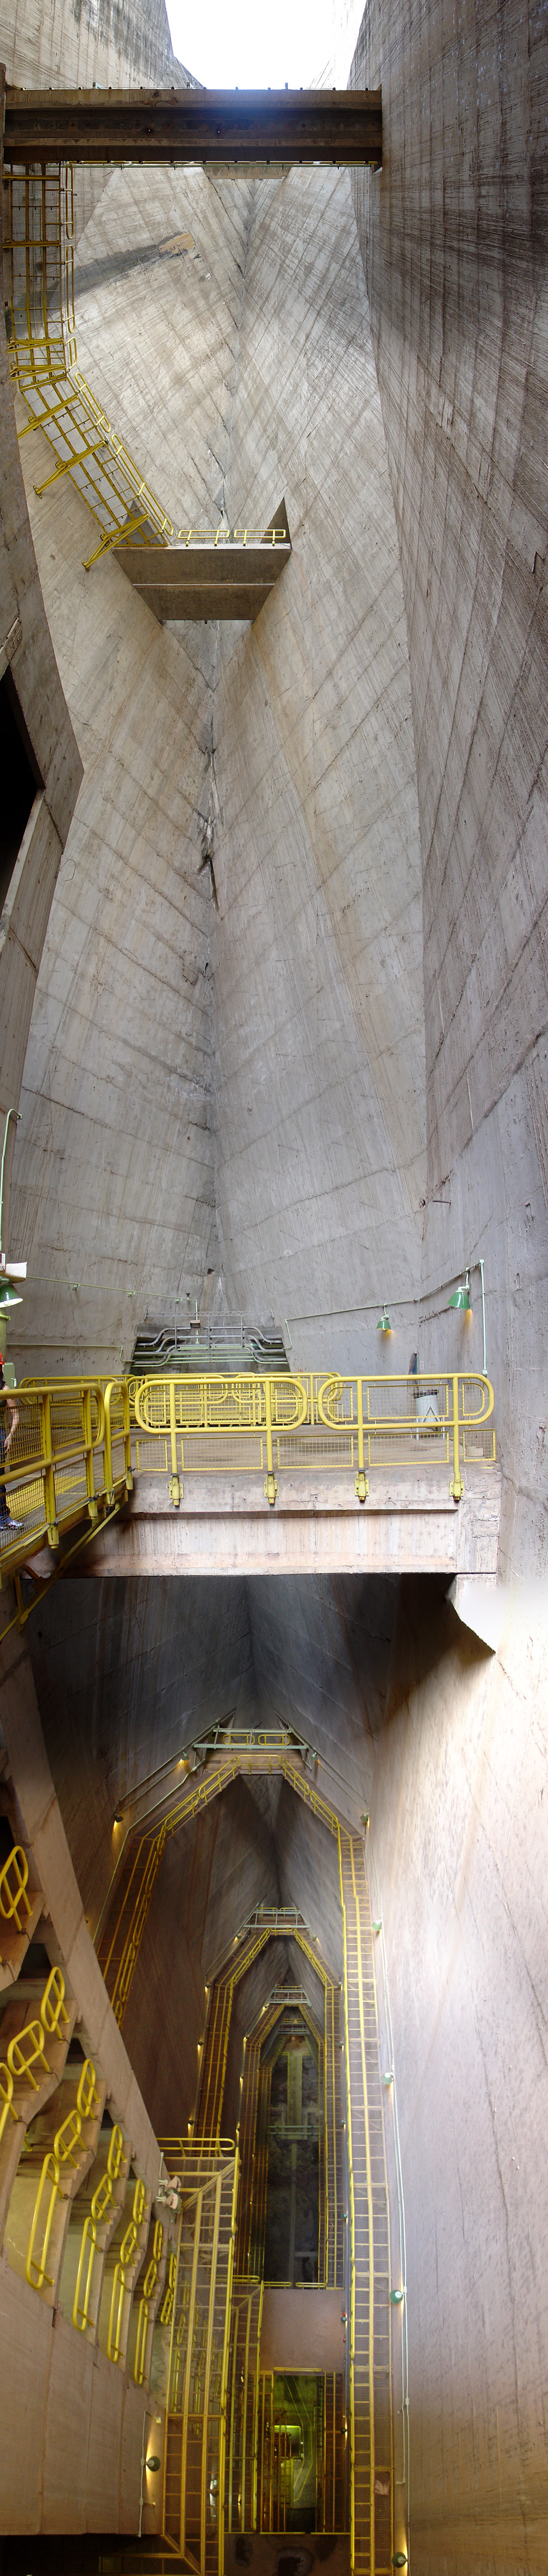 https://i1.wp.com/upload.wikimedia.org/wikipedia/commons/4/49/Itaipu_D%C3%A9cembre_2007_-_Int%C3%A9rieur_du_barrage.jpg